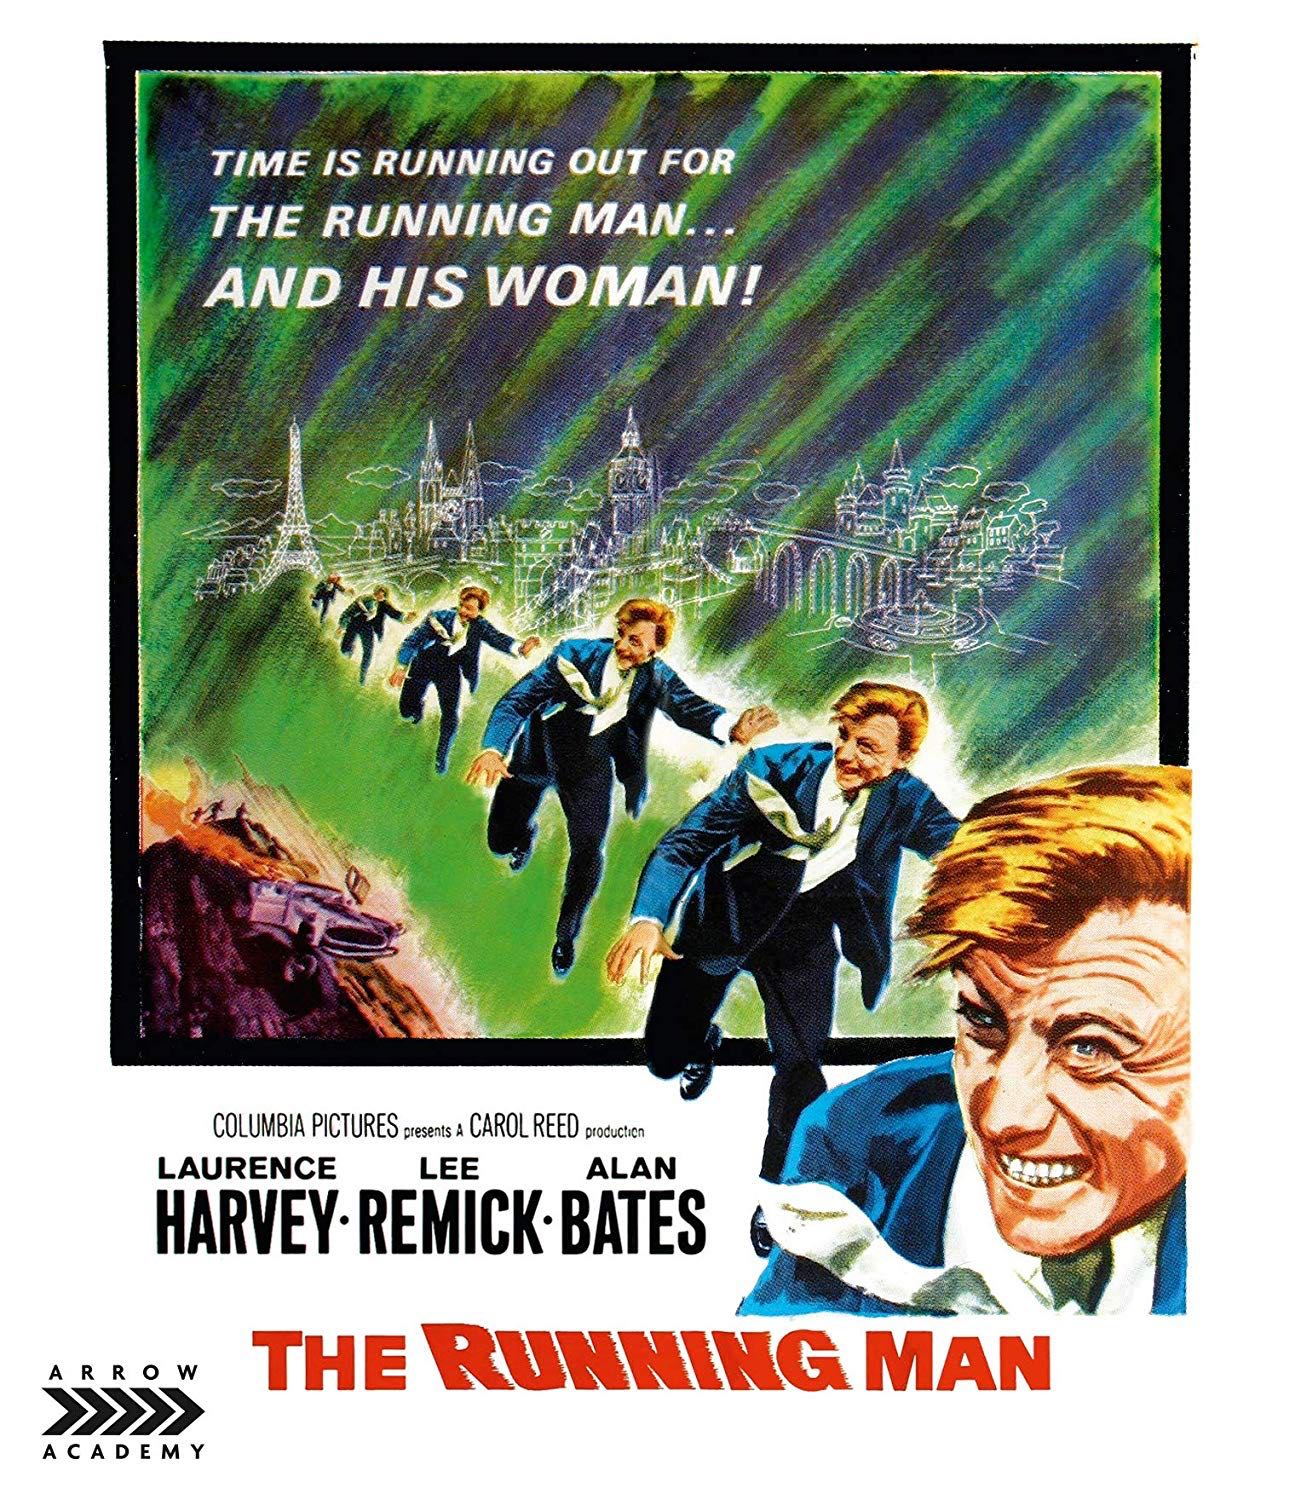 the running man review.jpeg